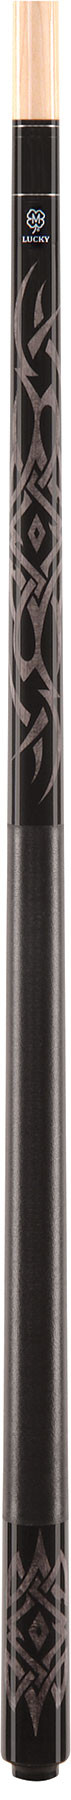 Lucky Pool Cue, L48, Grey